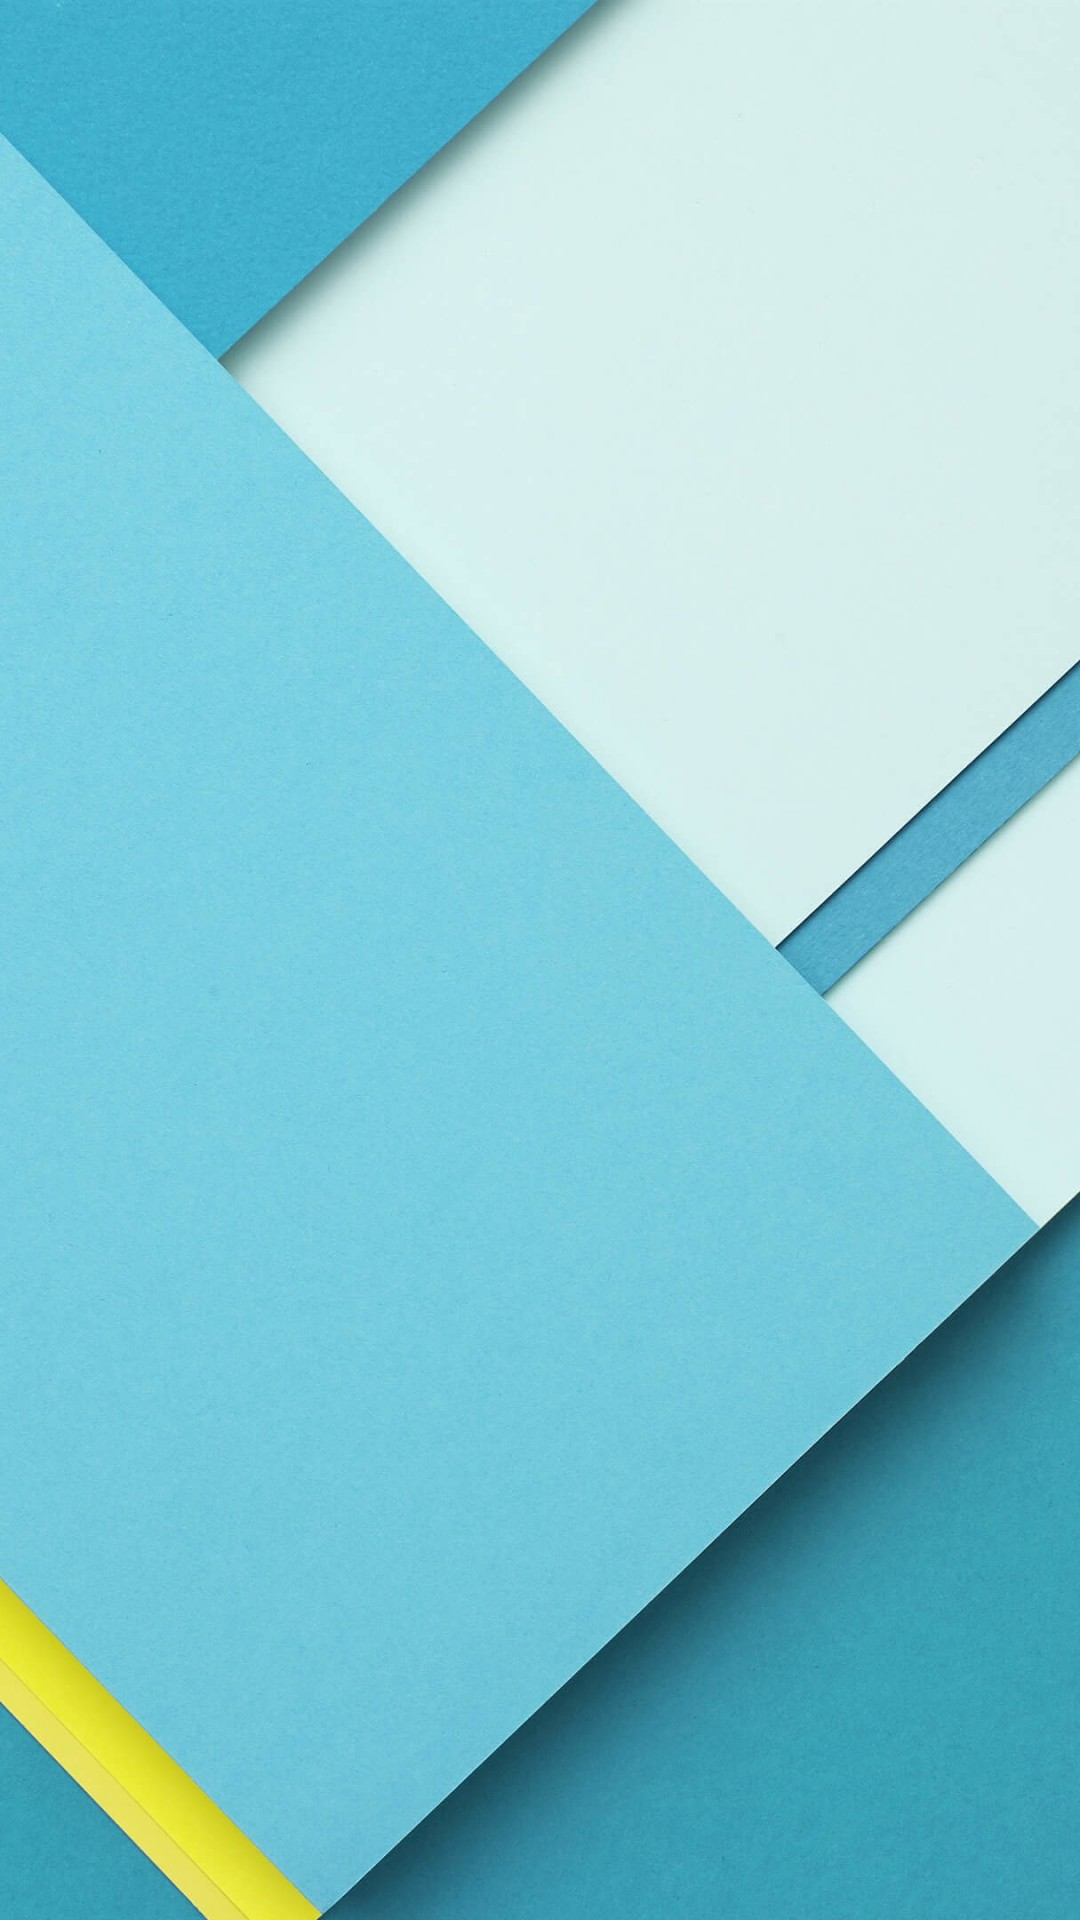 Google Material Design Wallpaper for SAMSUNG Galaxy S5